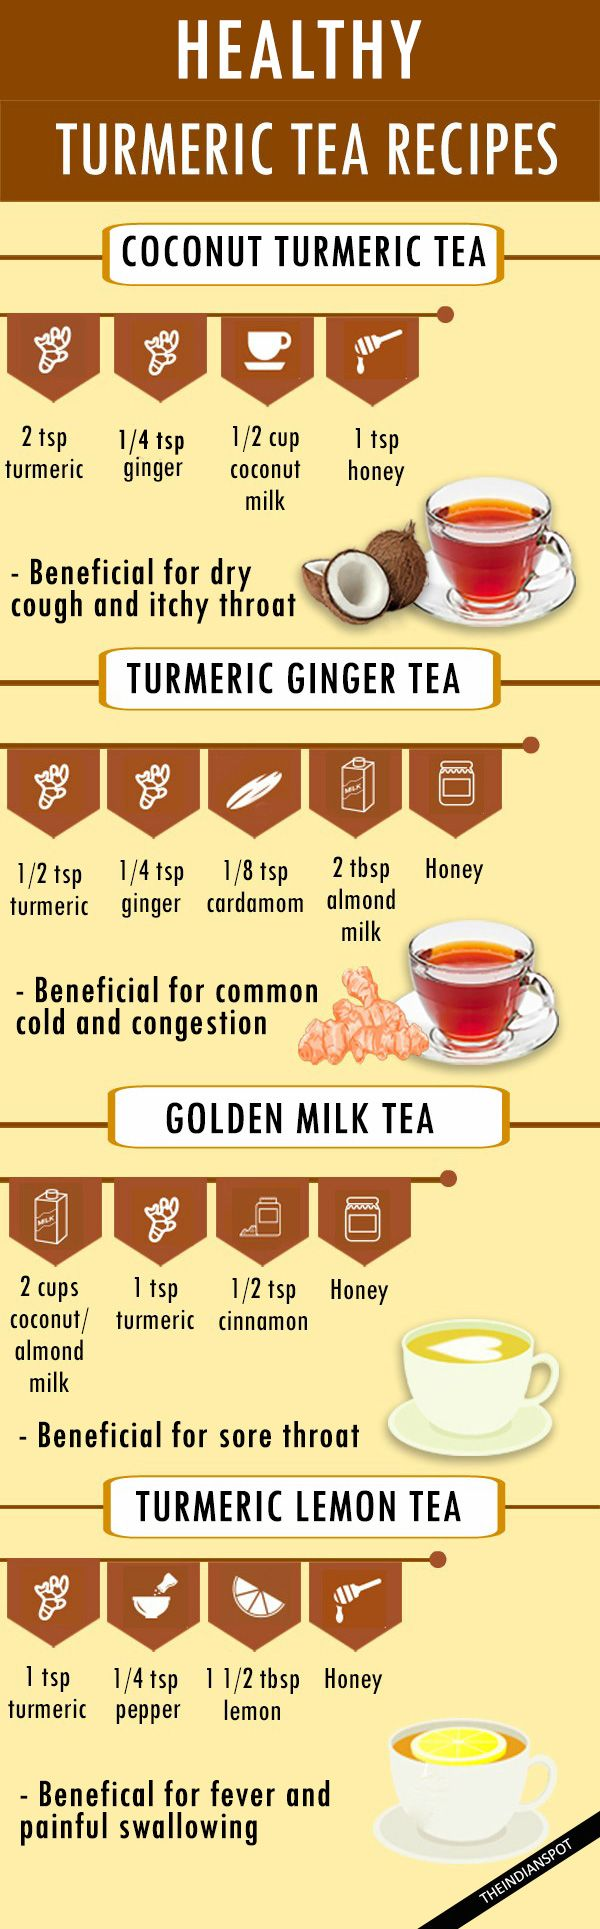 HEALTHY TURMERIC TEA RECIPES